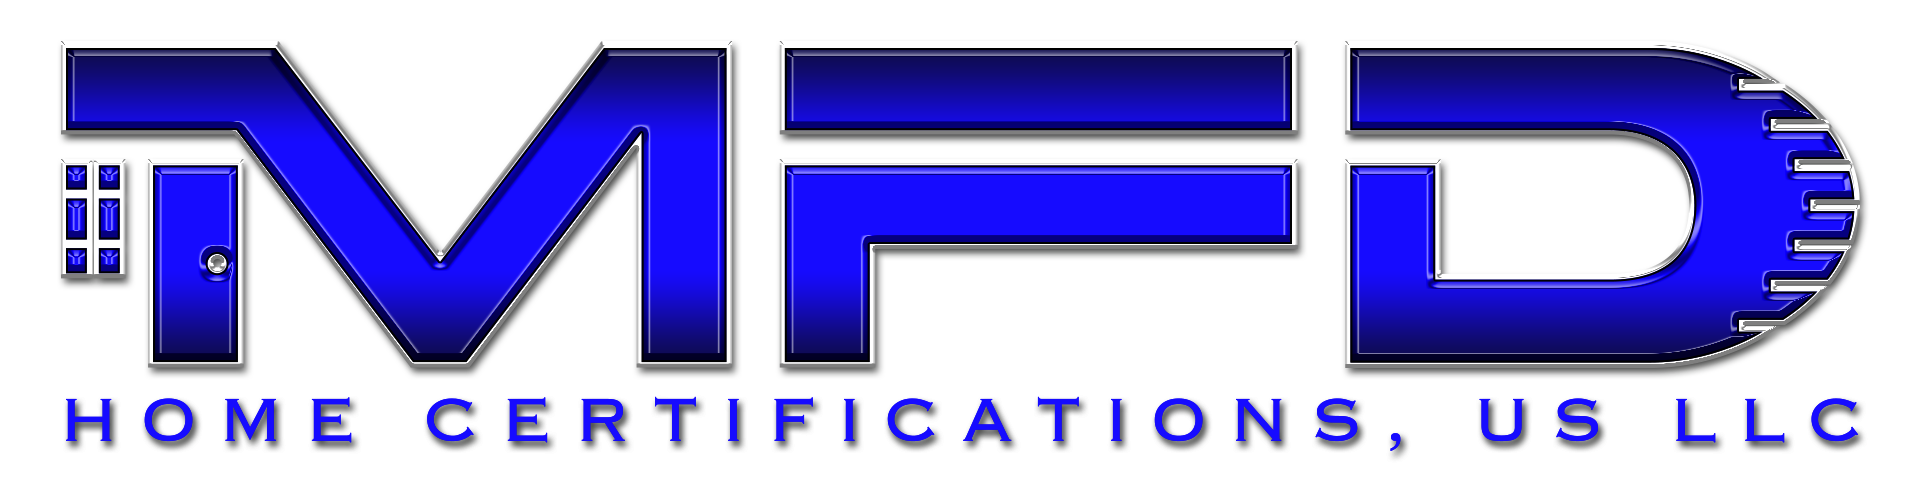 MFD Home Certifications